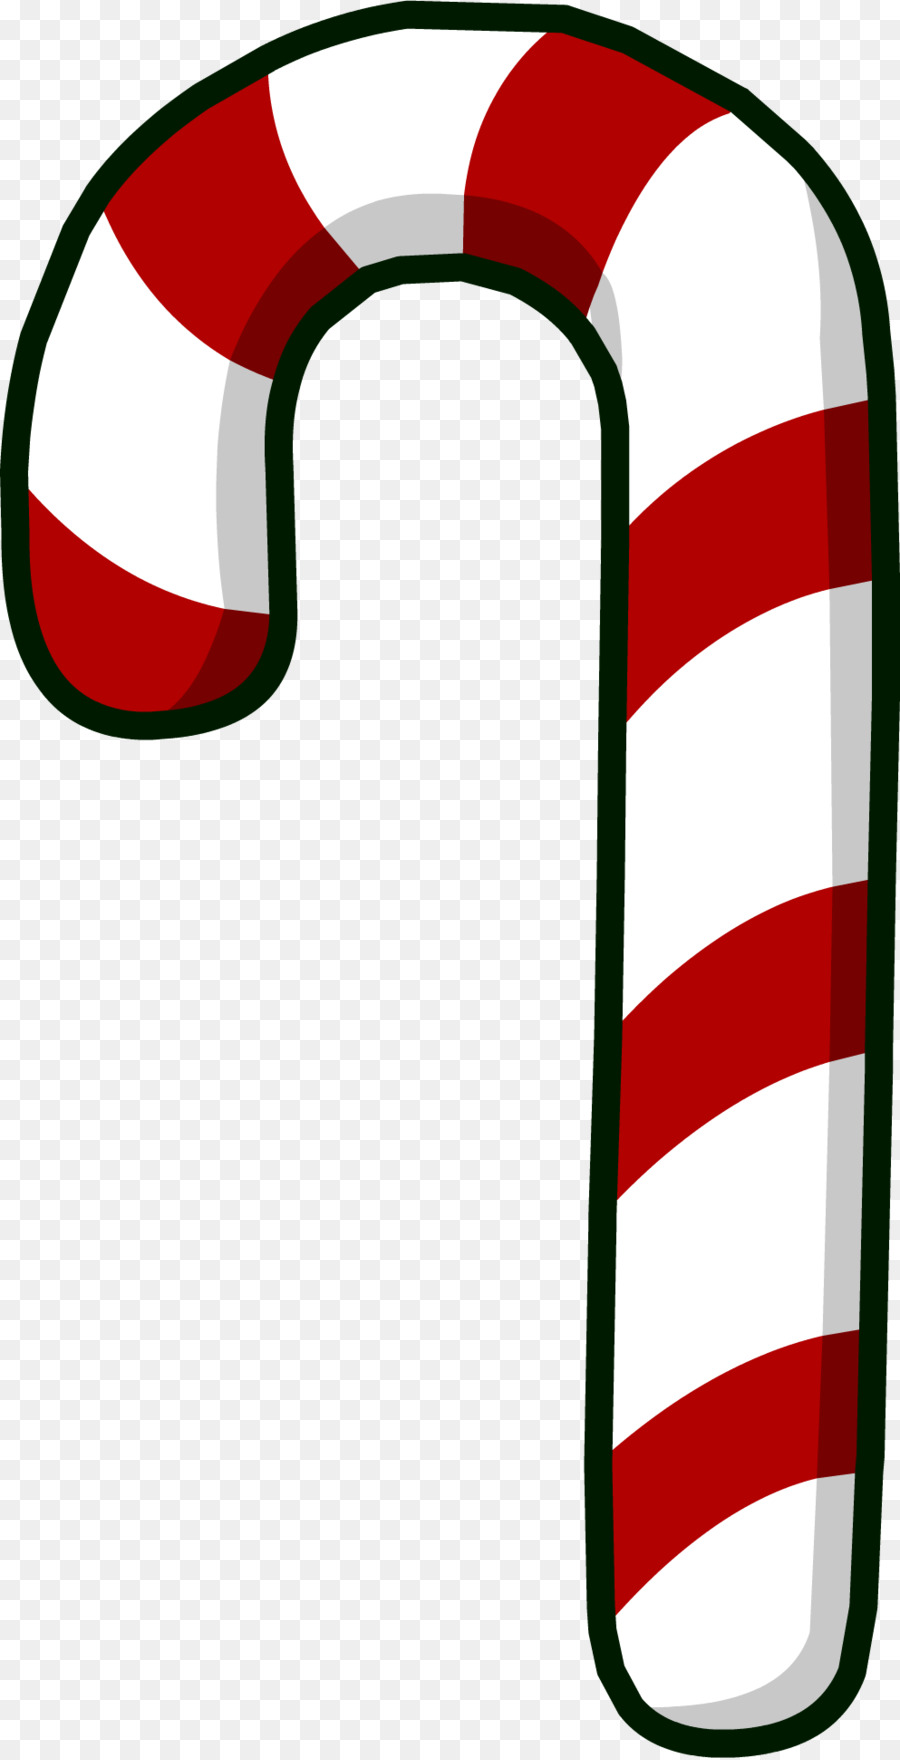 Candy cane kisses clipart vector transparent library Christmas Candy Cane clipart - Drawing, Candy, Product, transparent ... vector transparent library